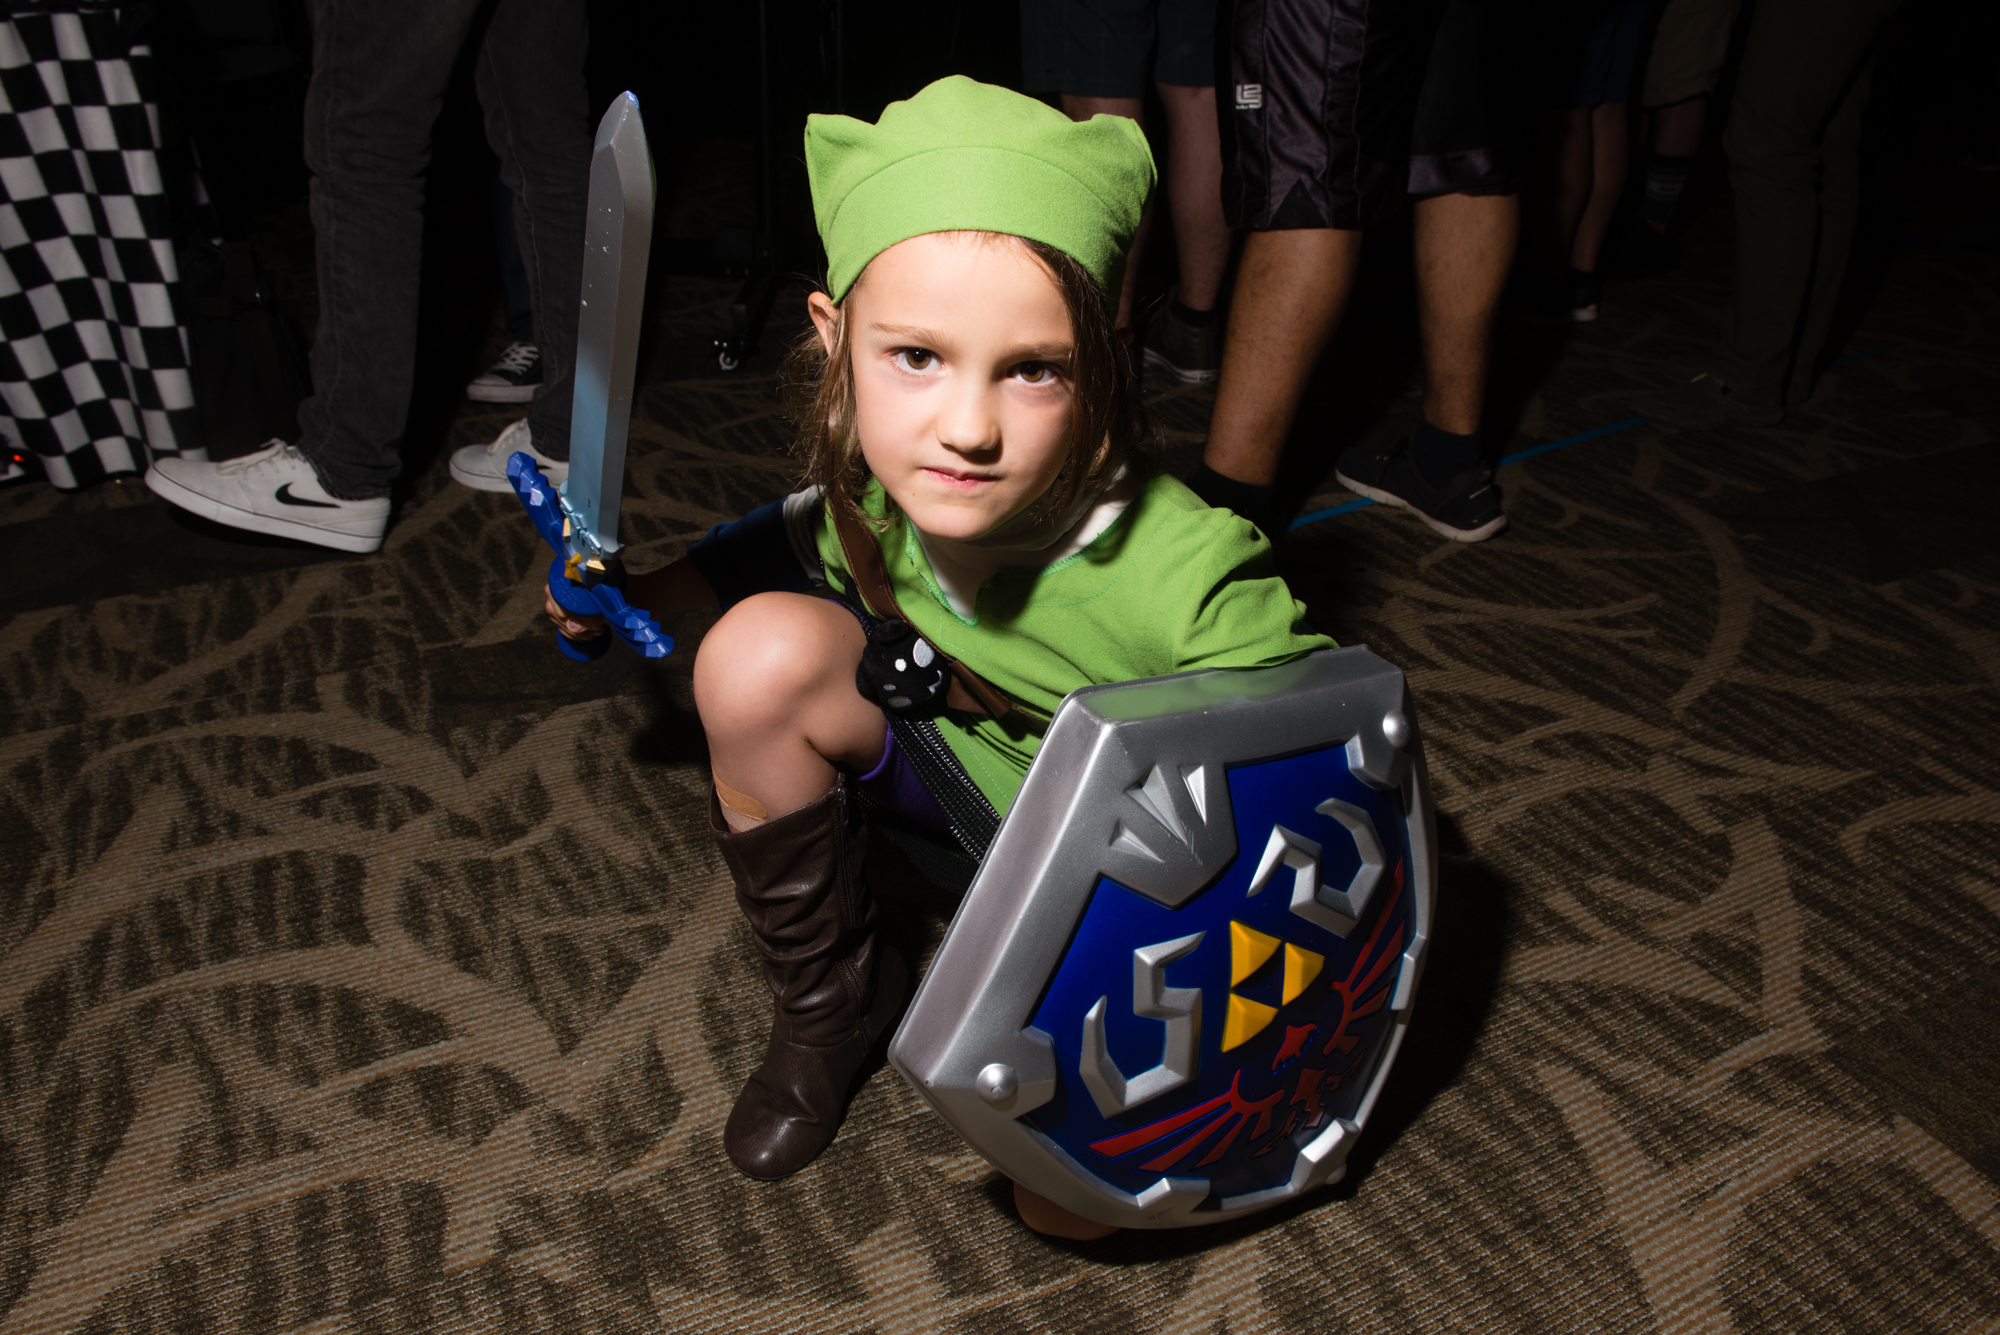 Seattle's Penny Arcade Expo (PAX West) brings tens of thousands of people to the Washington State Convention Center every year! PAX West includes concerts, arcade games, video game tournaments, cosplay and more - and runs the entirety of Labor Day Weekend (Sept. 1-4). (Image: Chona Kasinger / Seattle Refined)